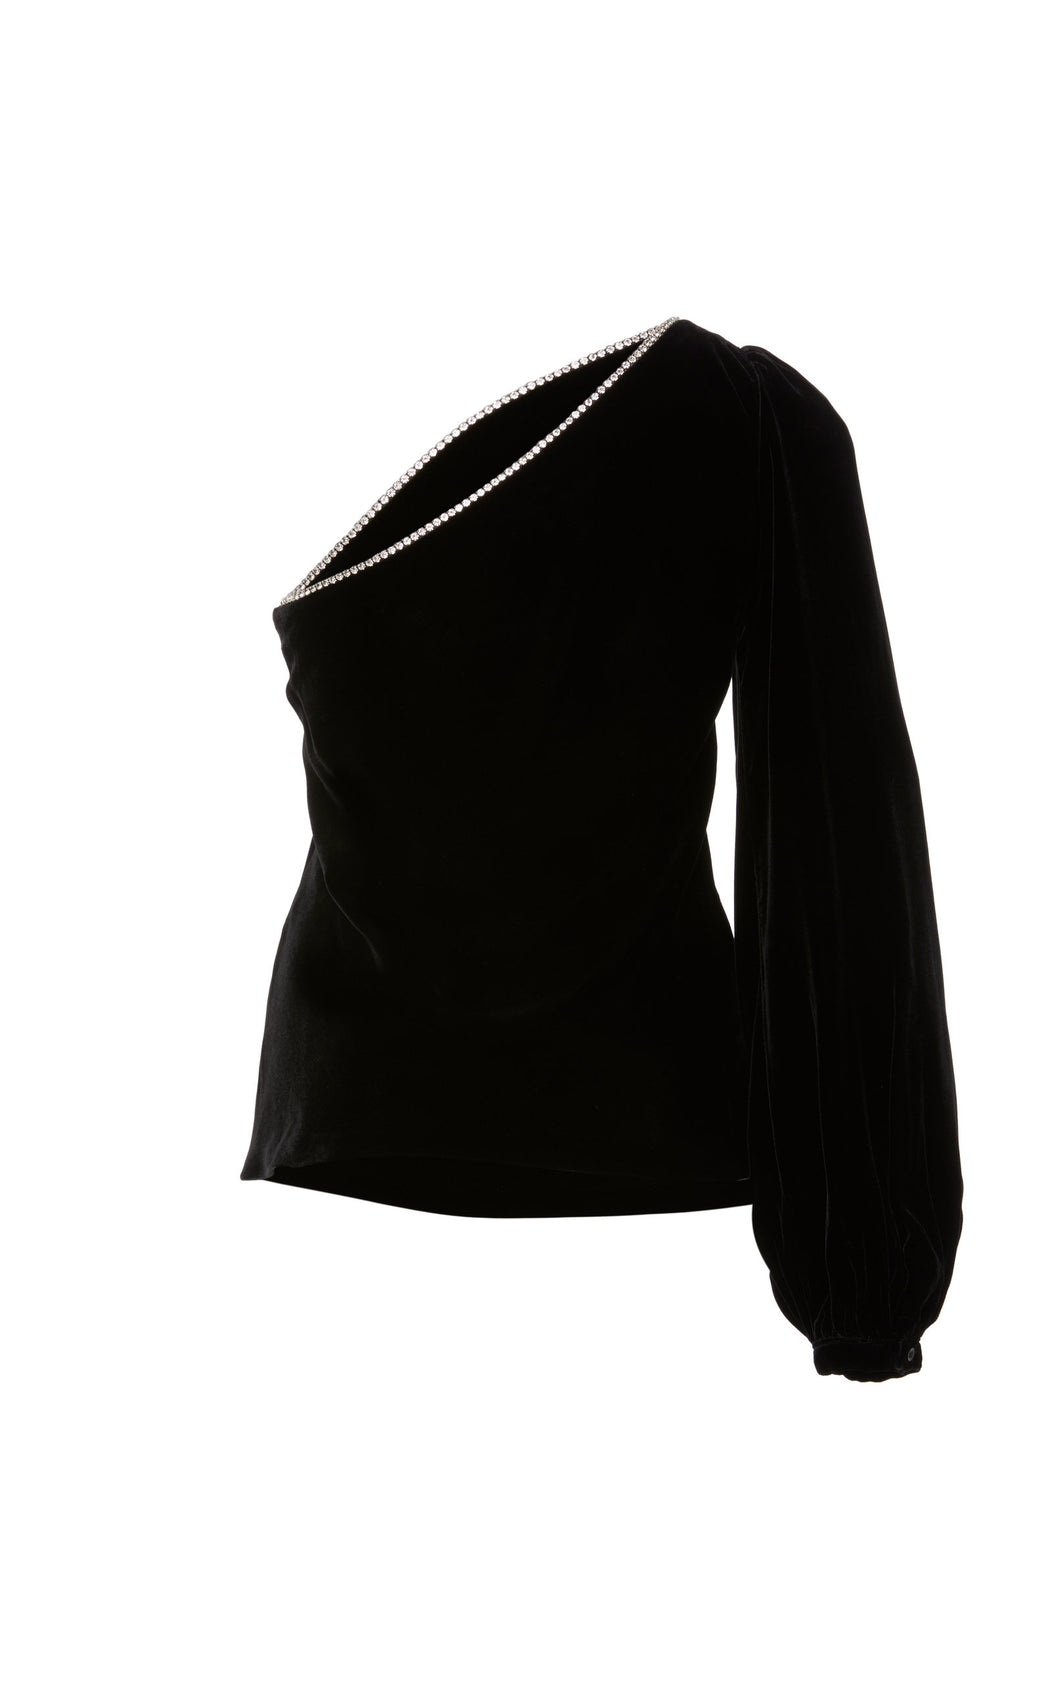 Maria Crystal-Embellished Black Velvet Top